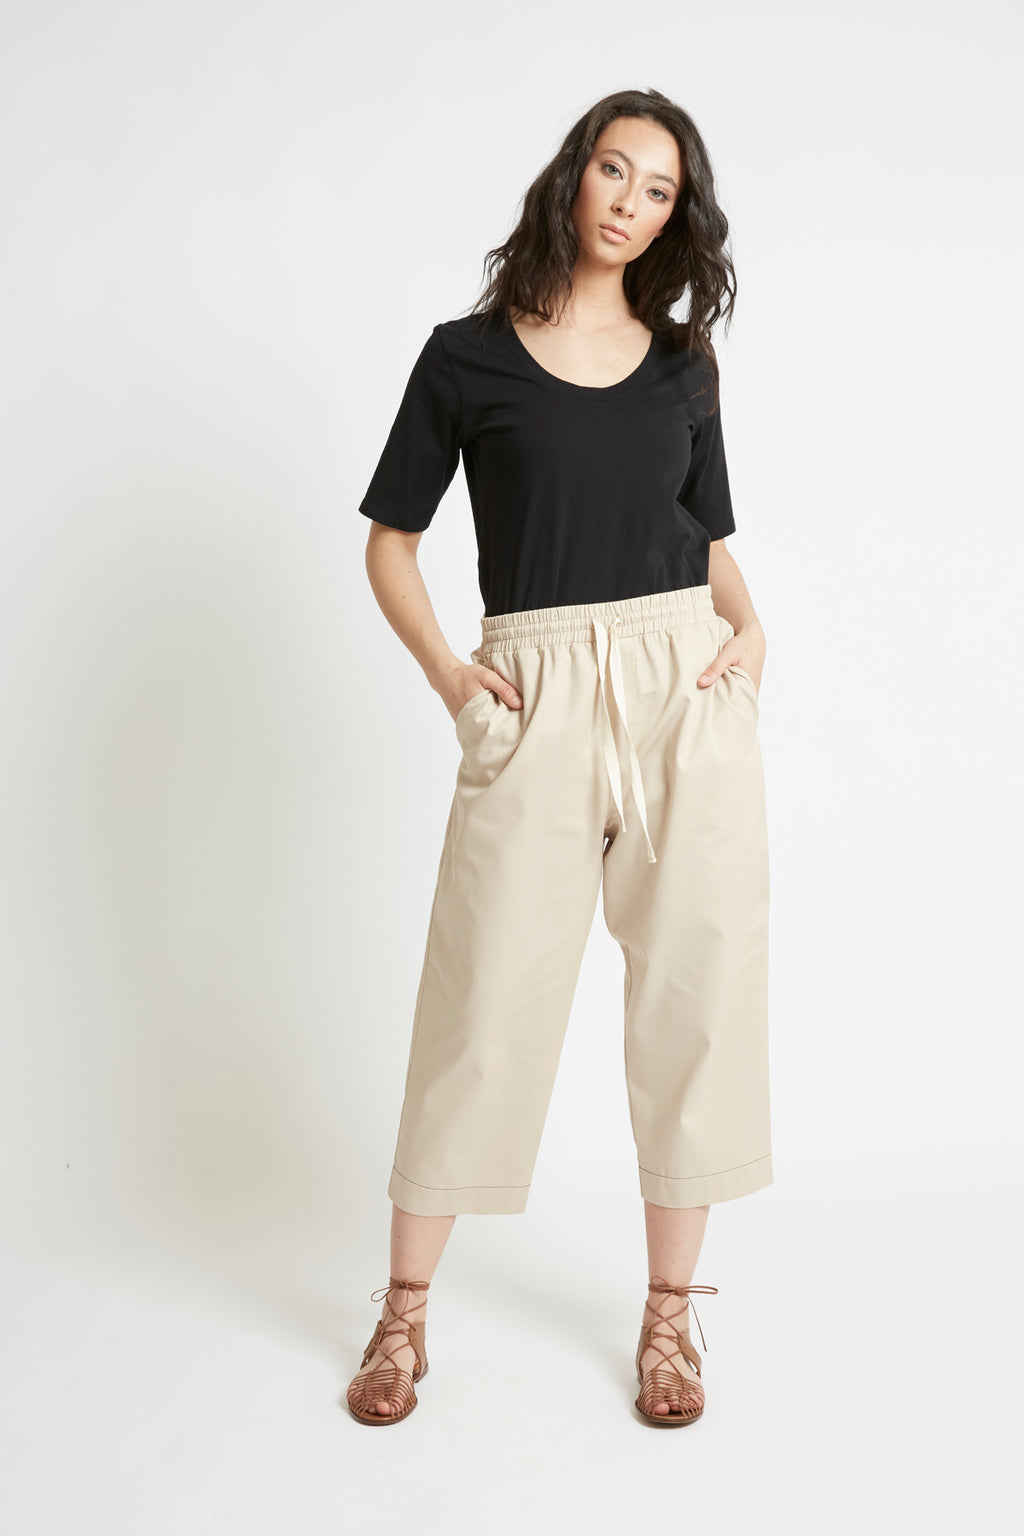 Sand Cotton Tapered Pant-FRSKE-THE FASHION ADVOCATE-ethical sustainable Australian womens fashion online